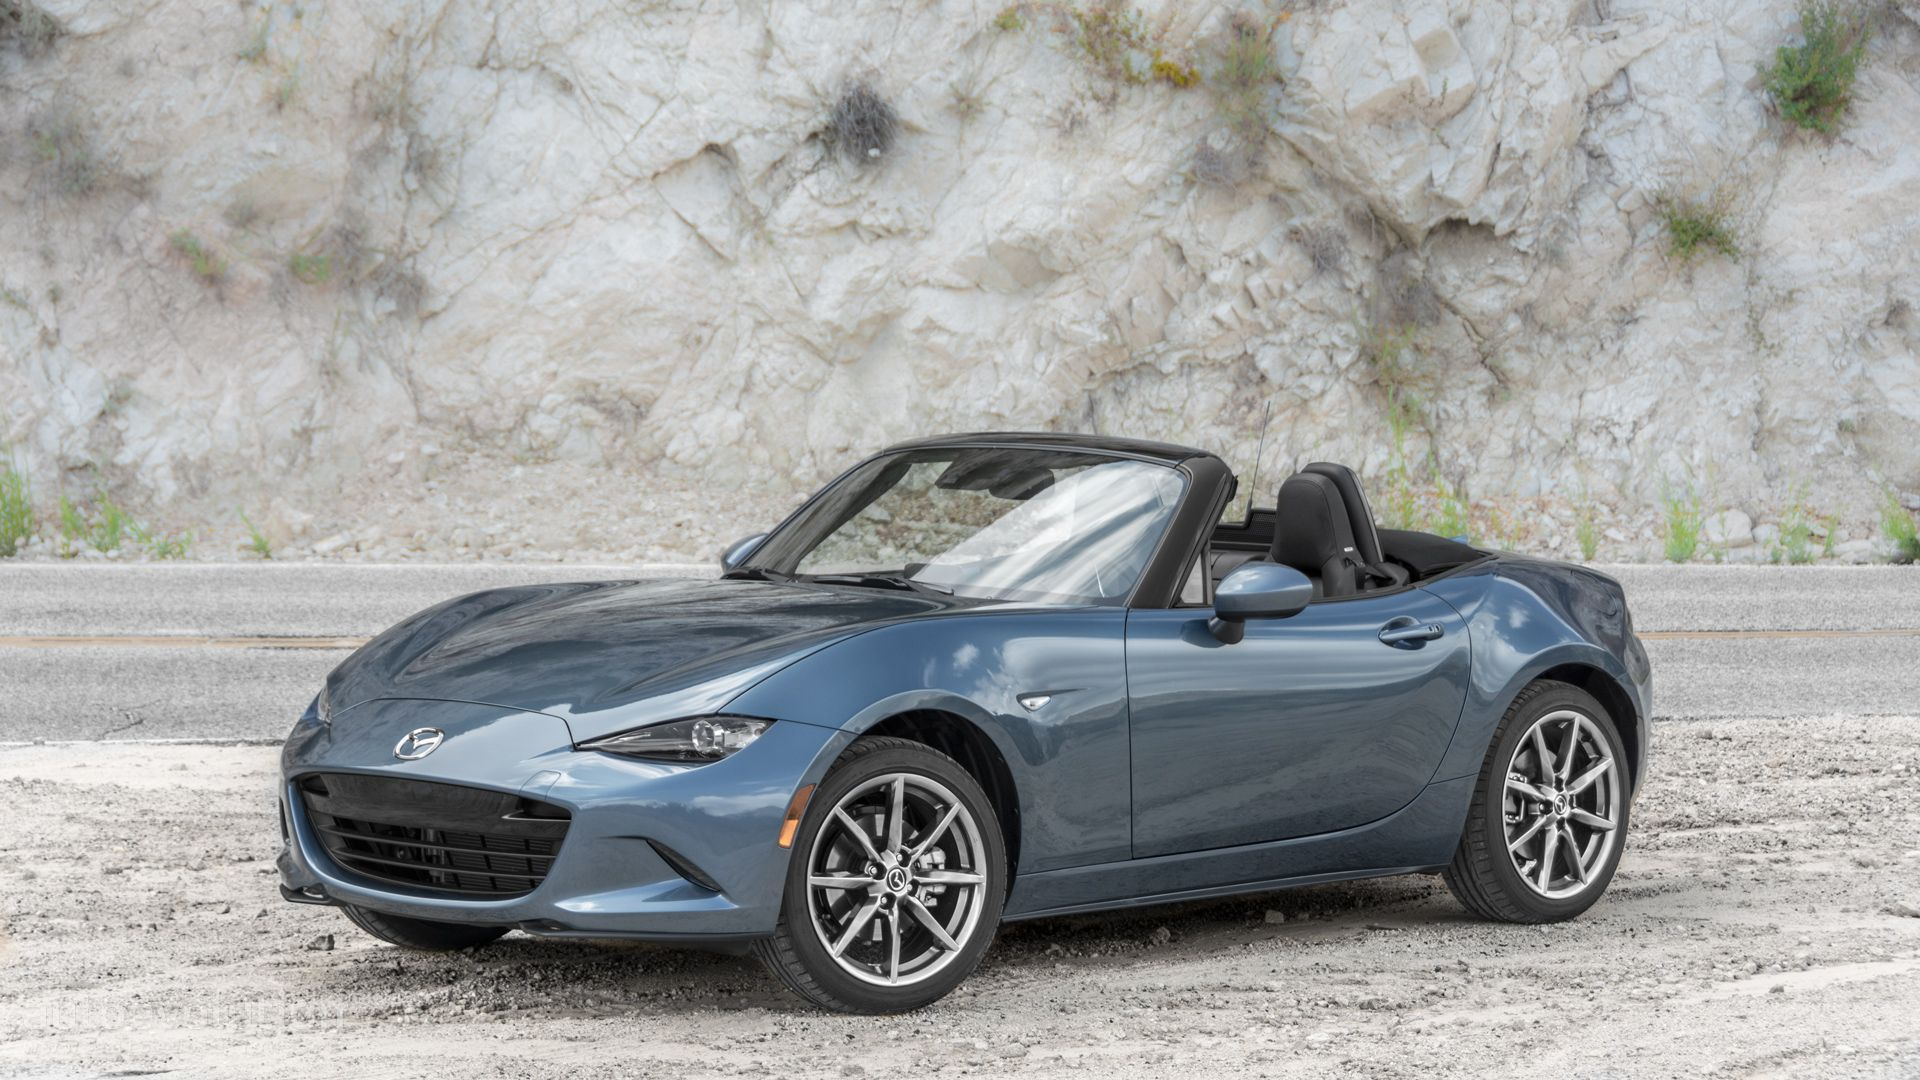 Fantastic 2016 Mazda Miata MX5 Tested Back To Basics  Autoevolution